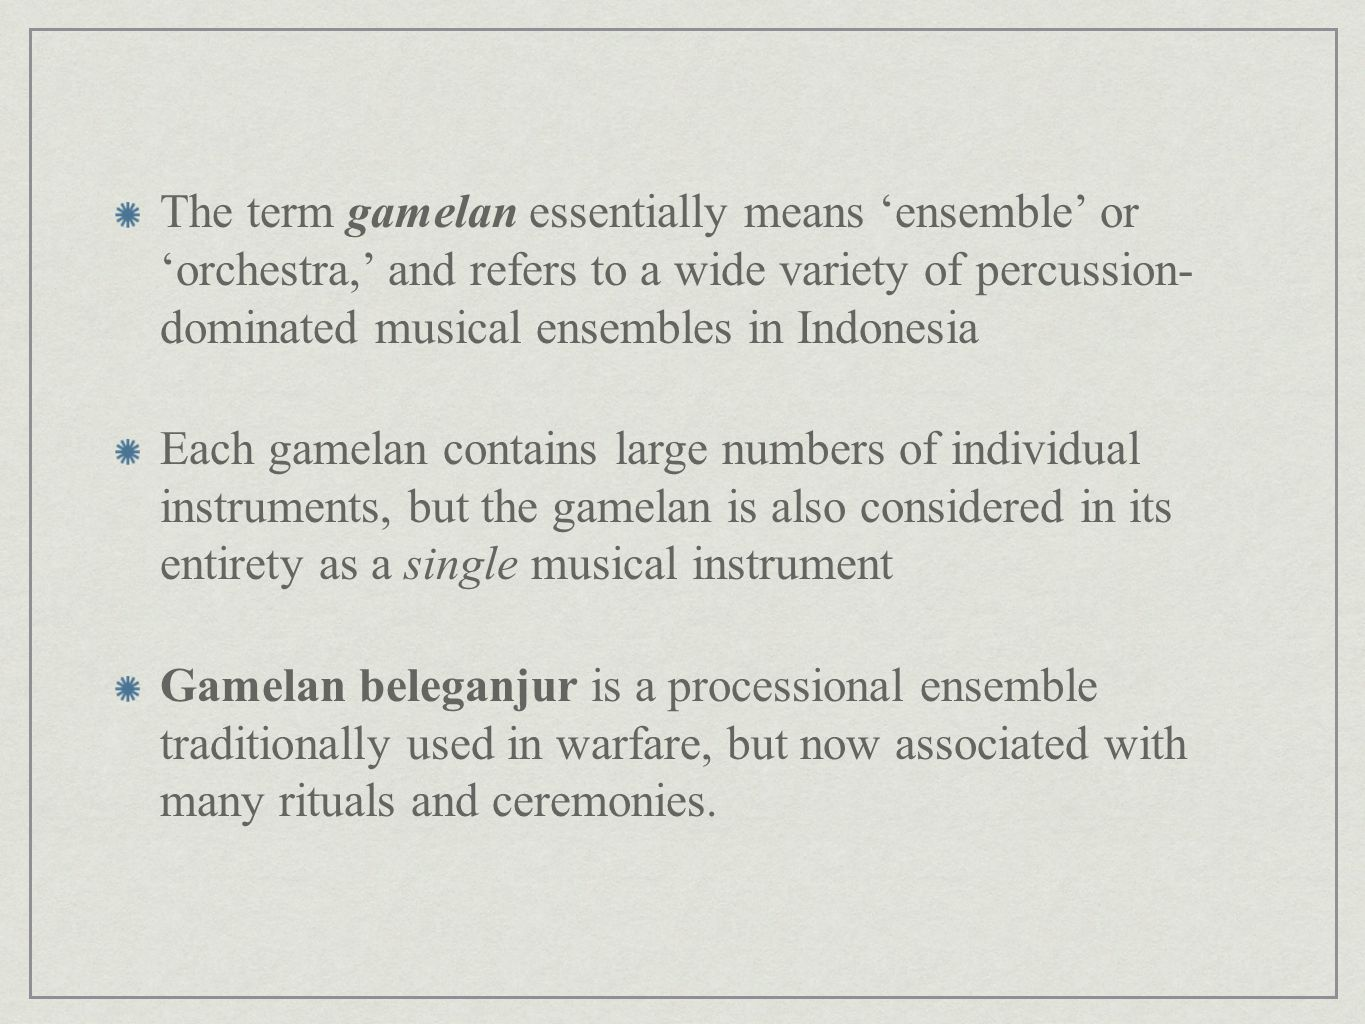 The term gamelan essentially means 'ensemble' or 'orchestra,' and refers to a wide variety of percussion- dominated musical ensembles in Indonesia